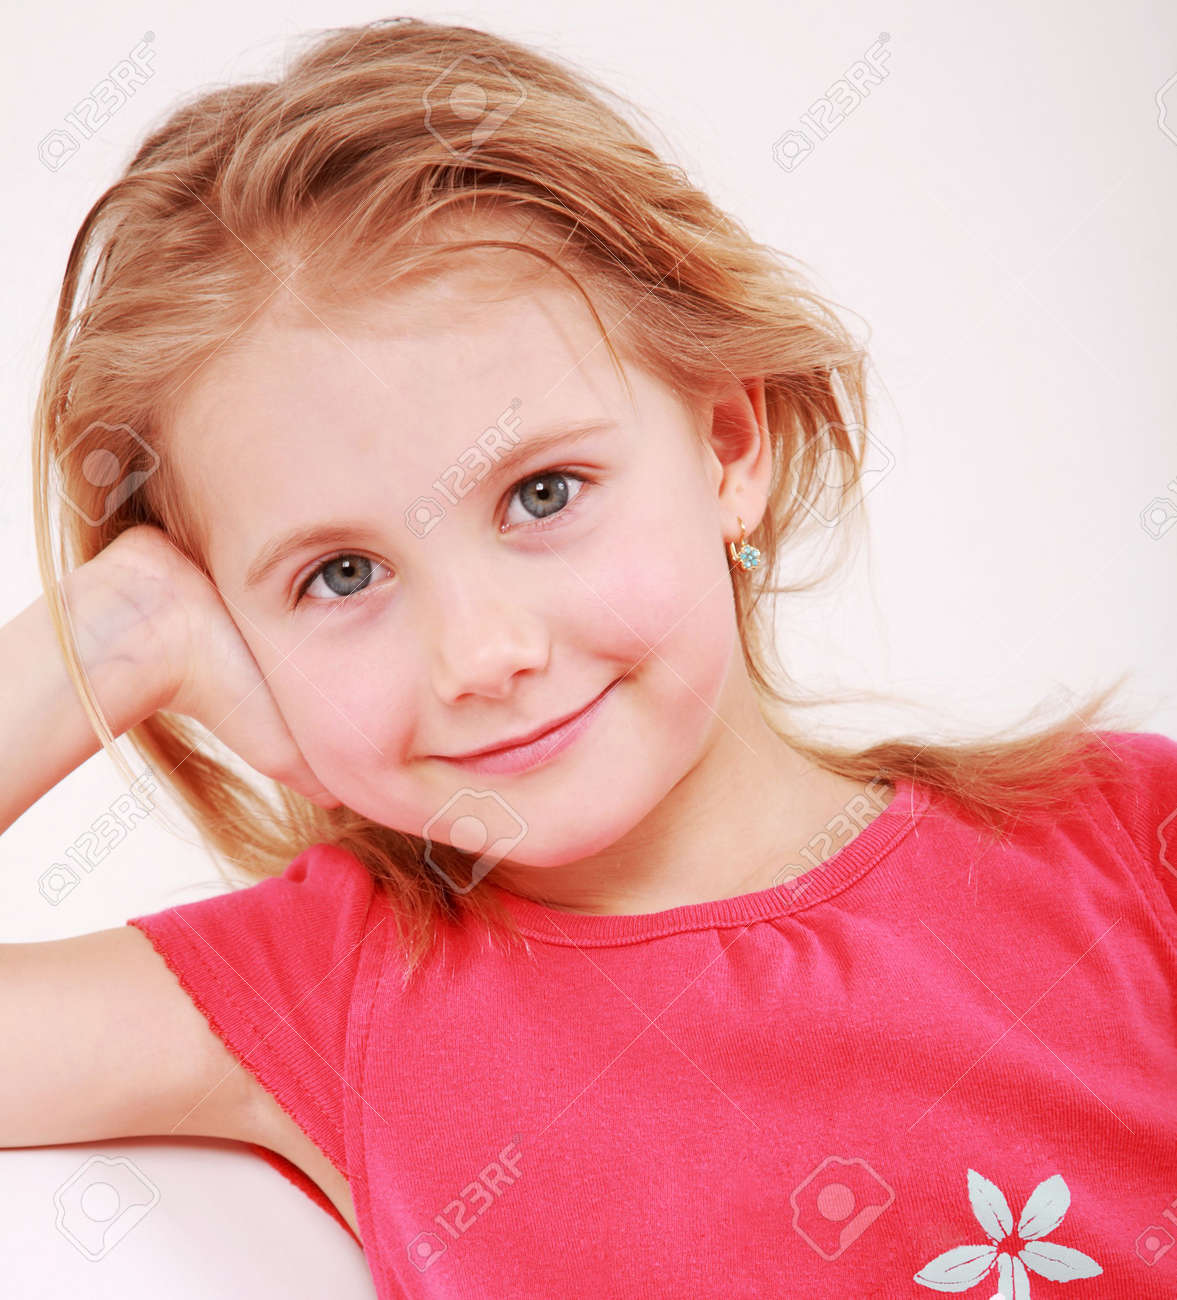 Beautiful small girl is smiling  sincerely Stock Photo - 5147671